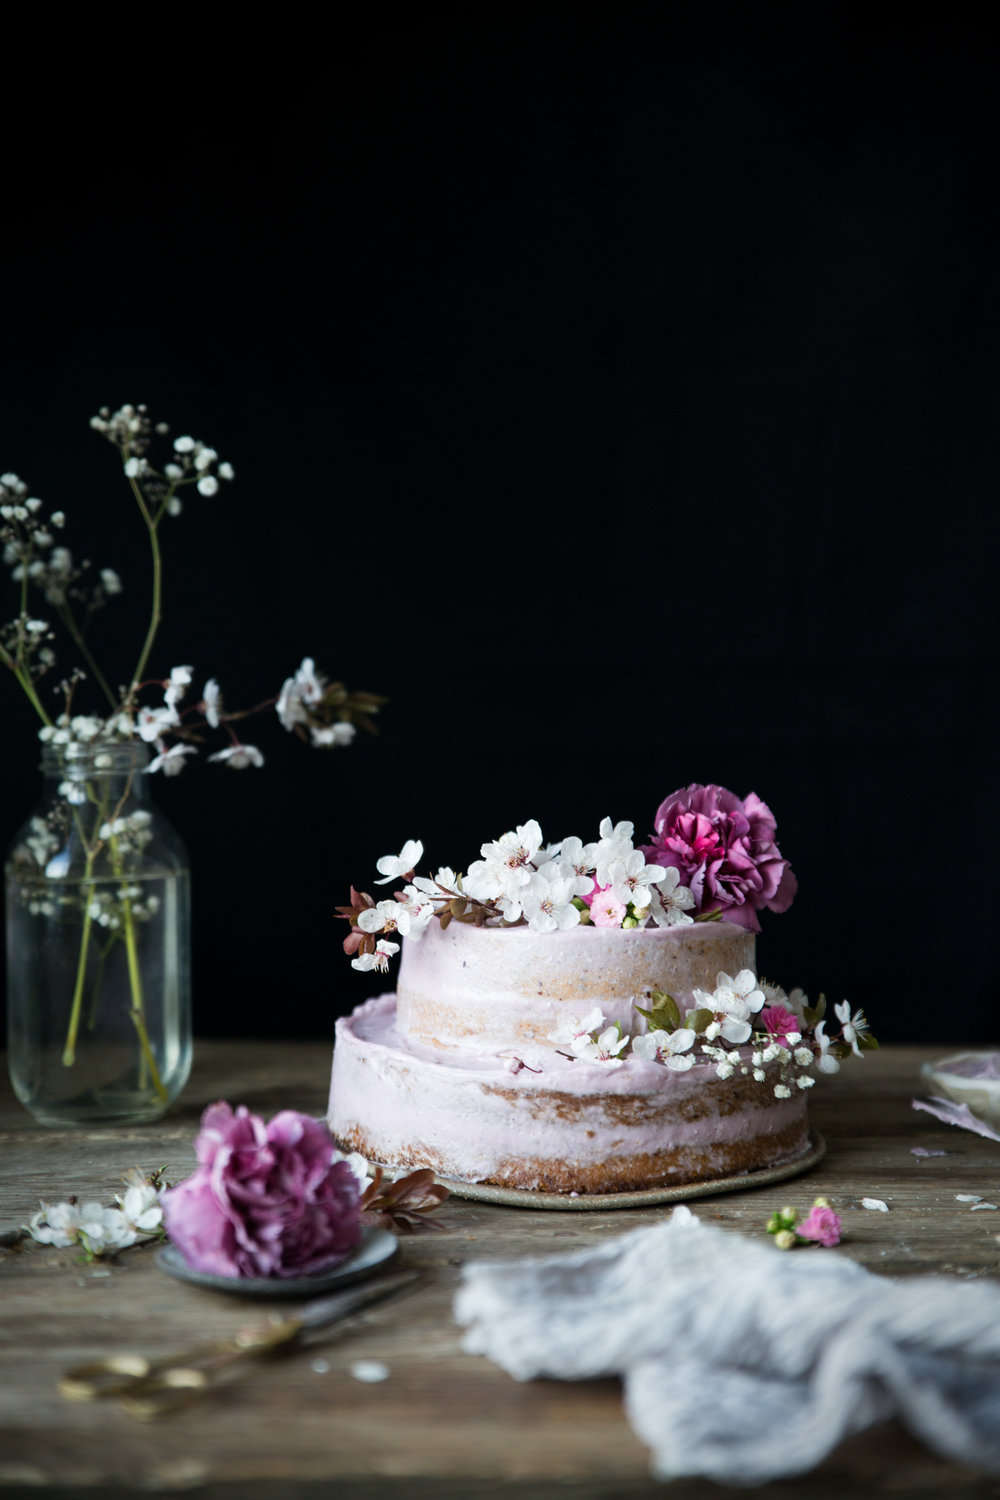 Learn food styling in London